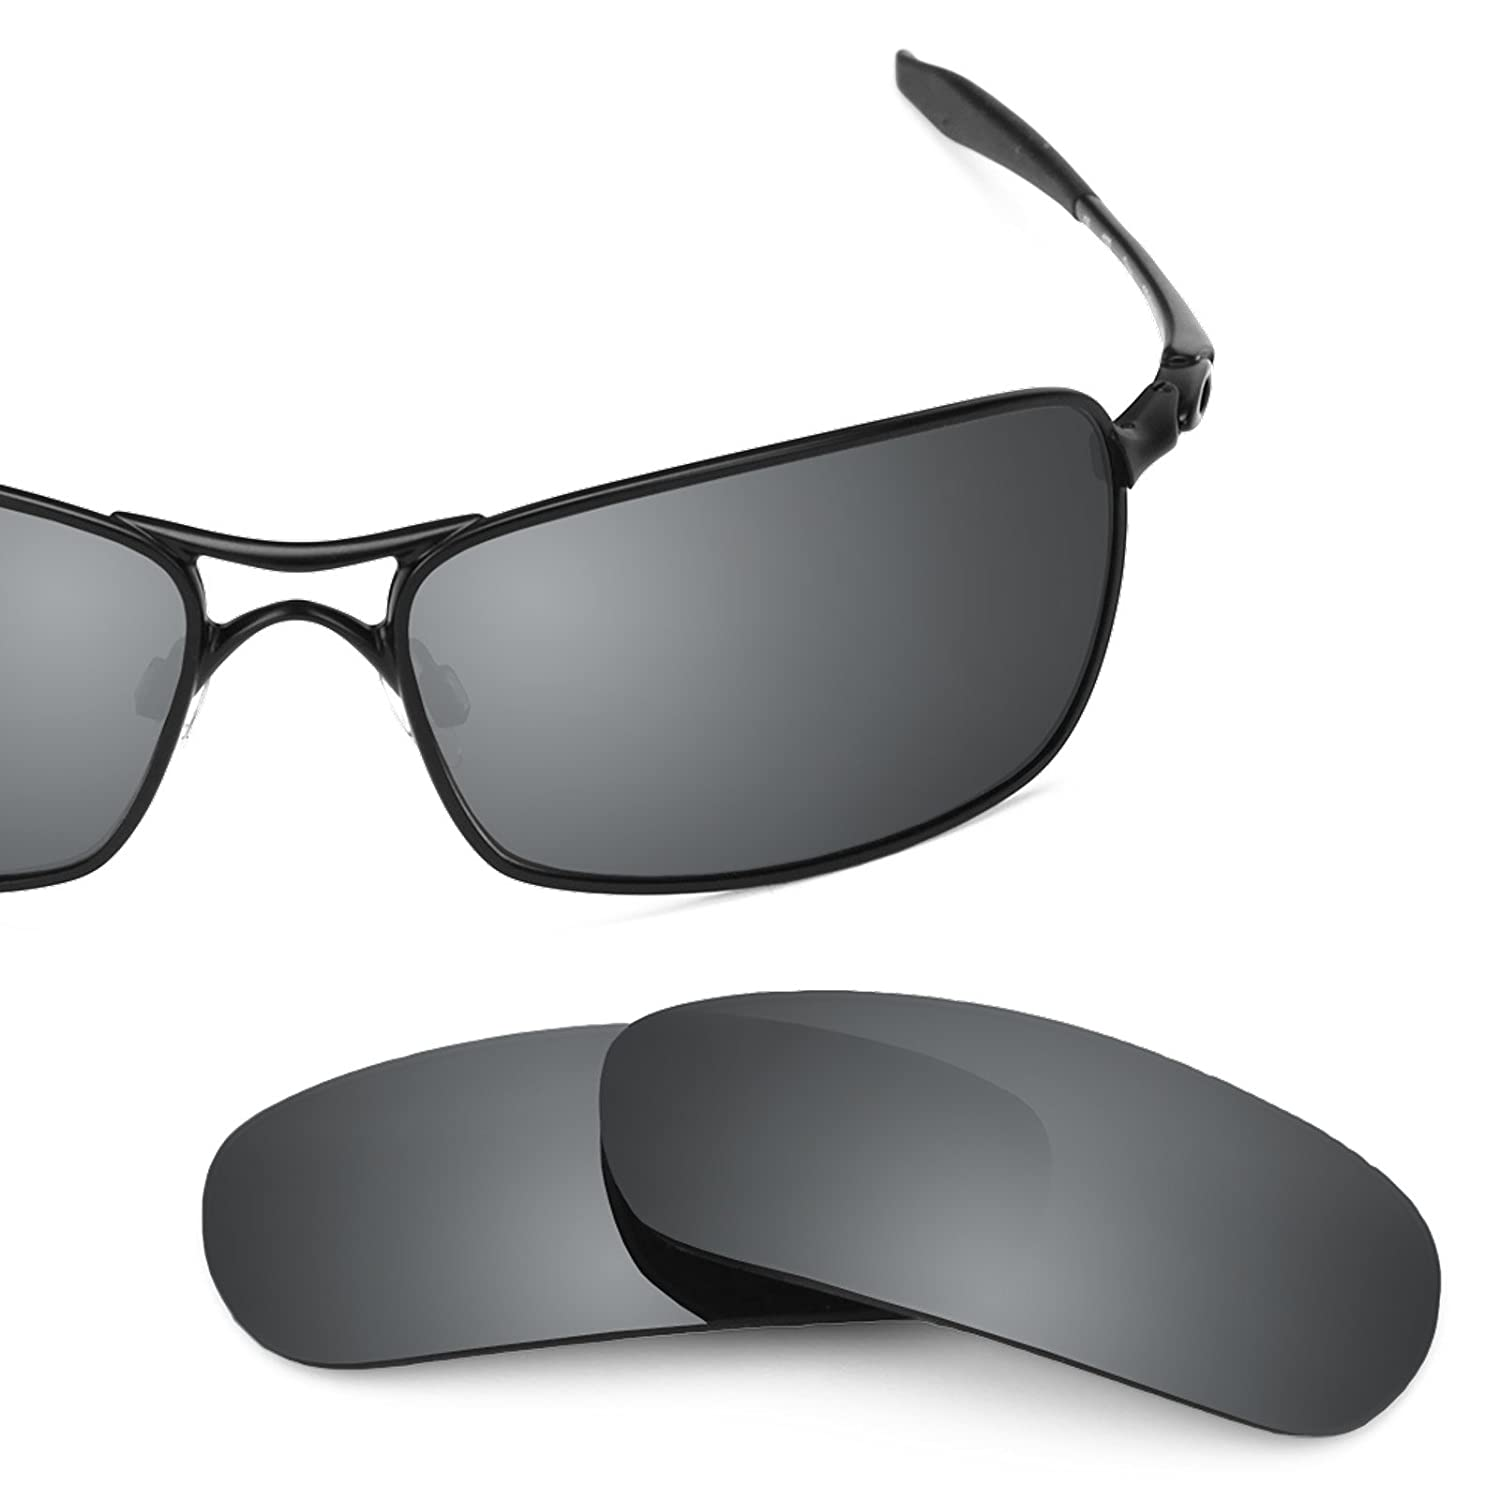 e14bdc33a3 Amazon.com  Revant Polarized Replacement Lenses for Oakley Crosshair 2.0  Elite Black Chrome MirrorShield  Sports   Outdoors